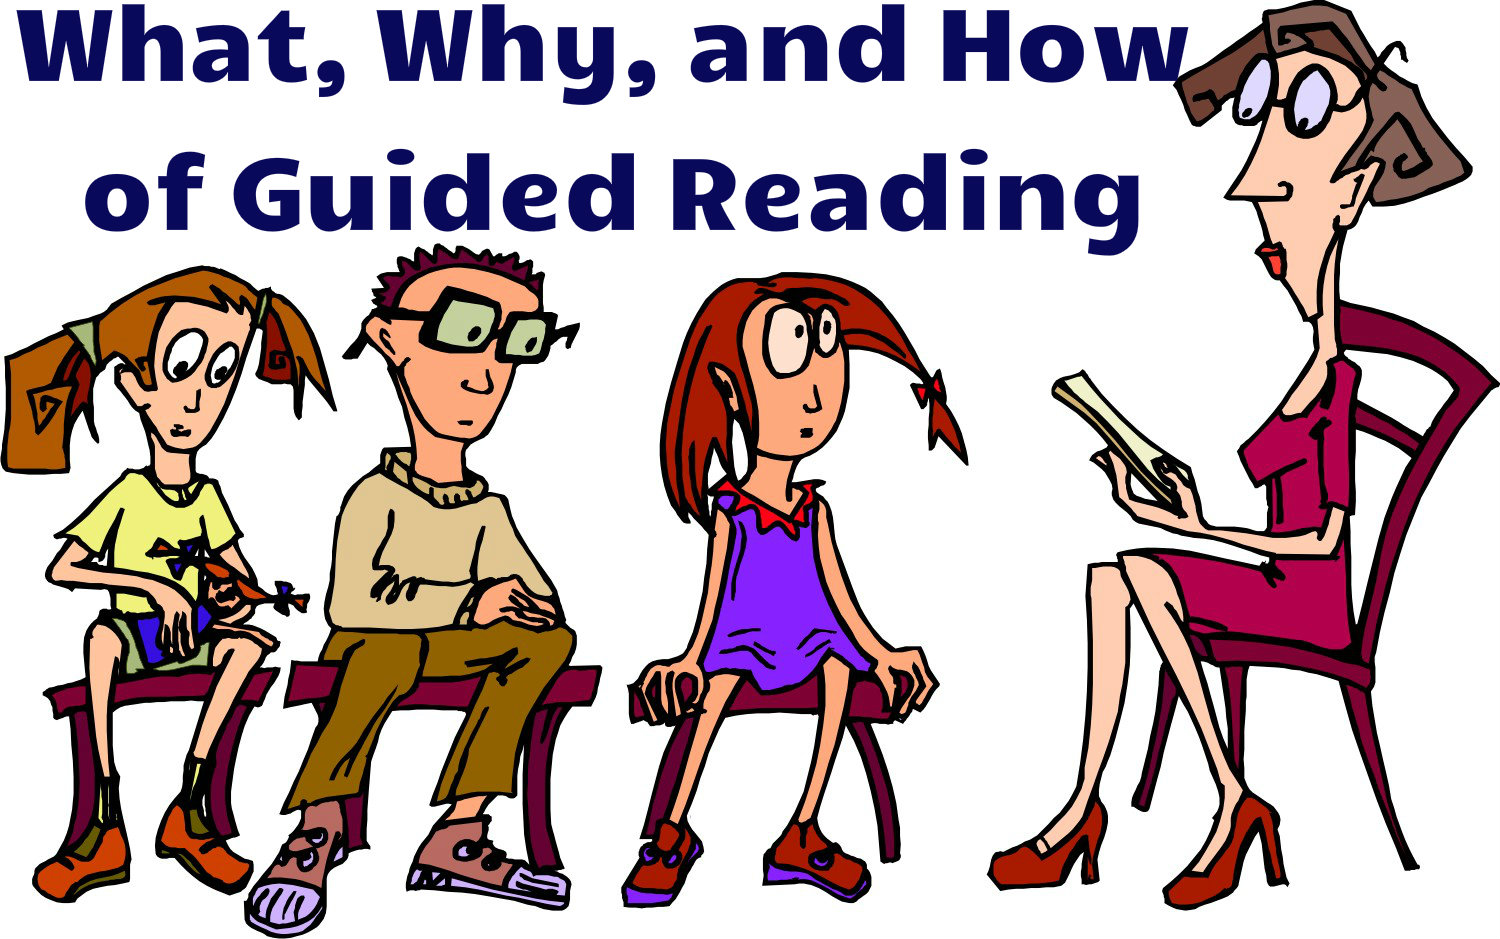 Guided Reading Clip Art